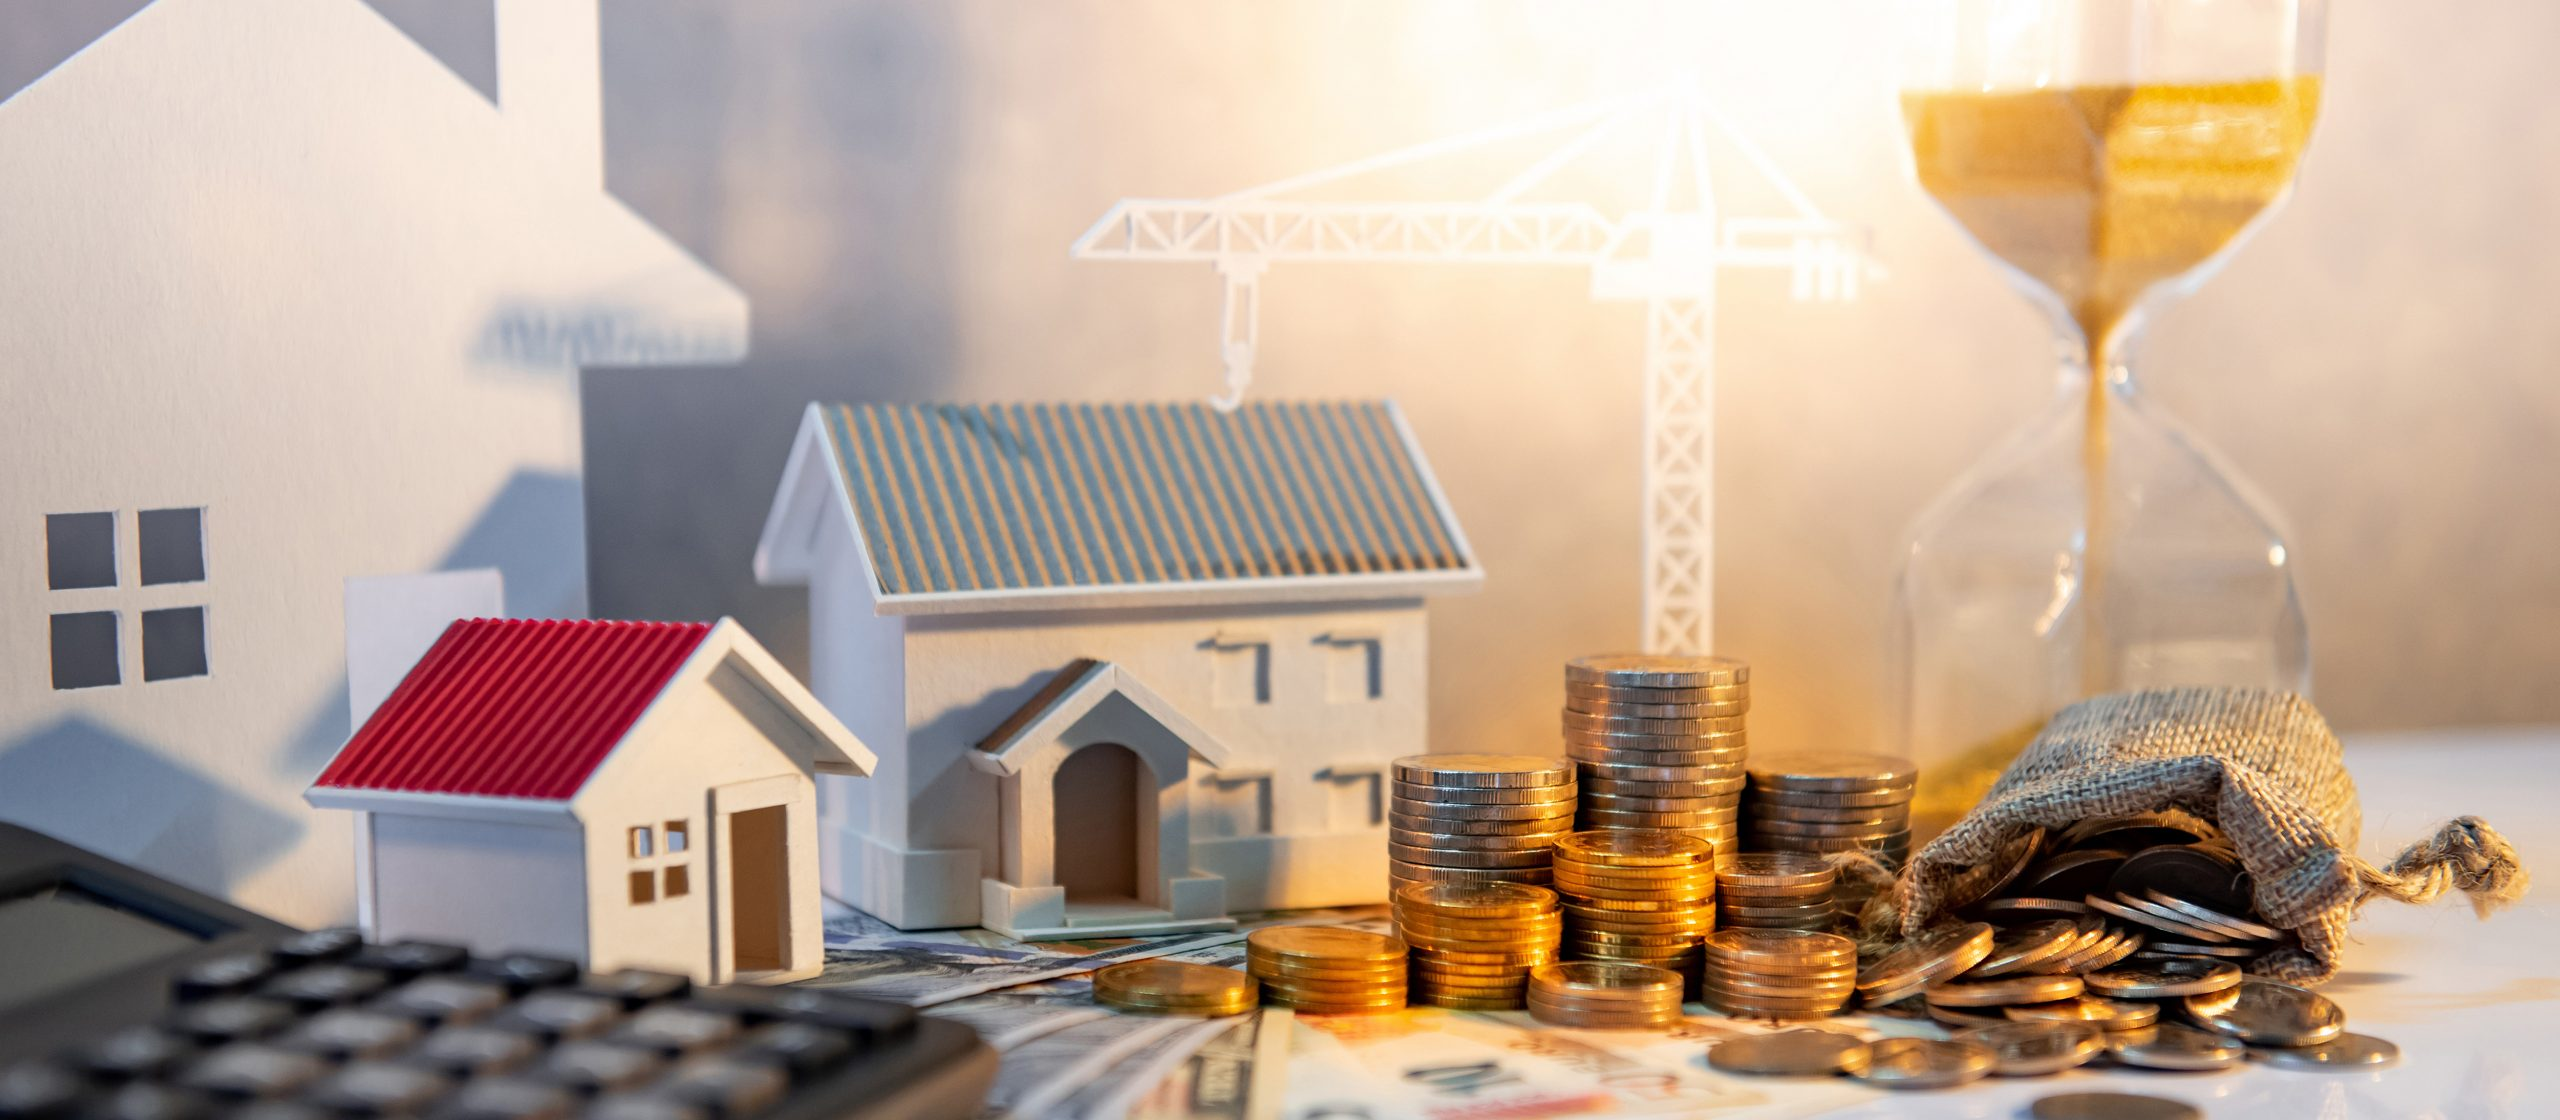 Are You Too Young To Invest In Real Estate?